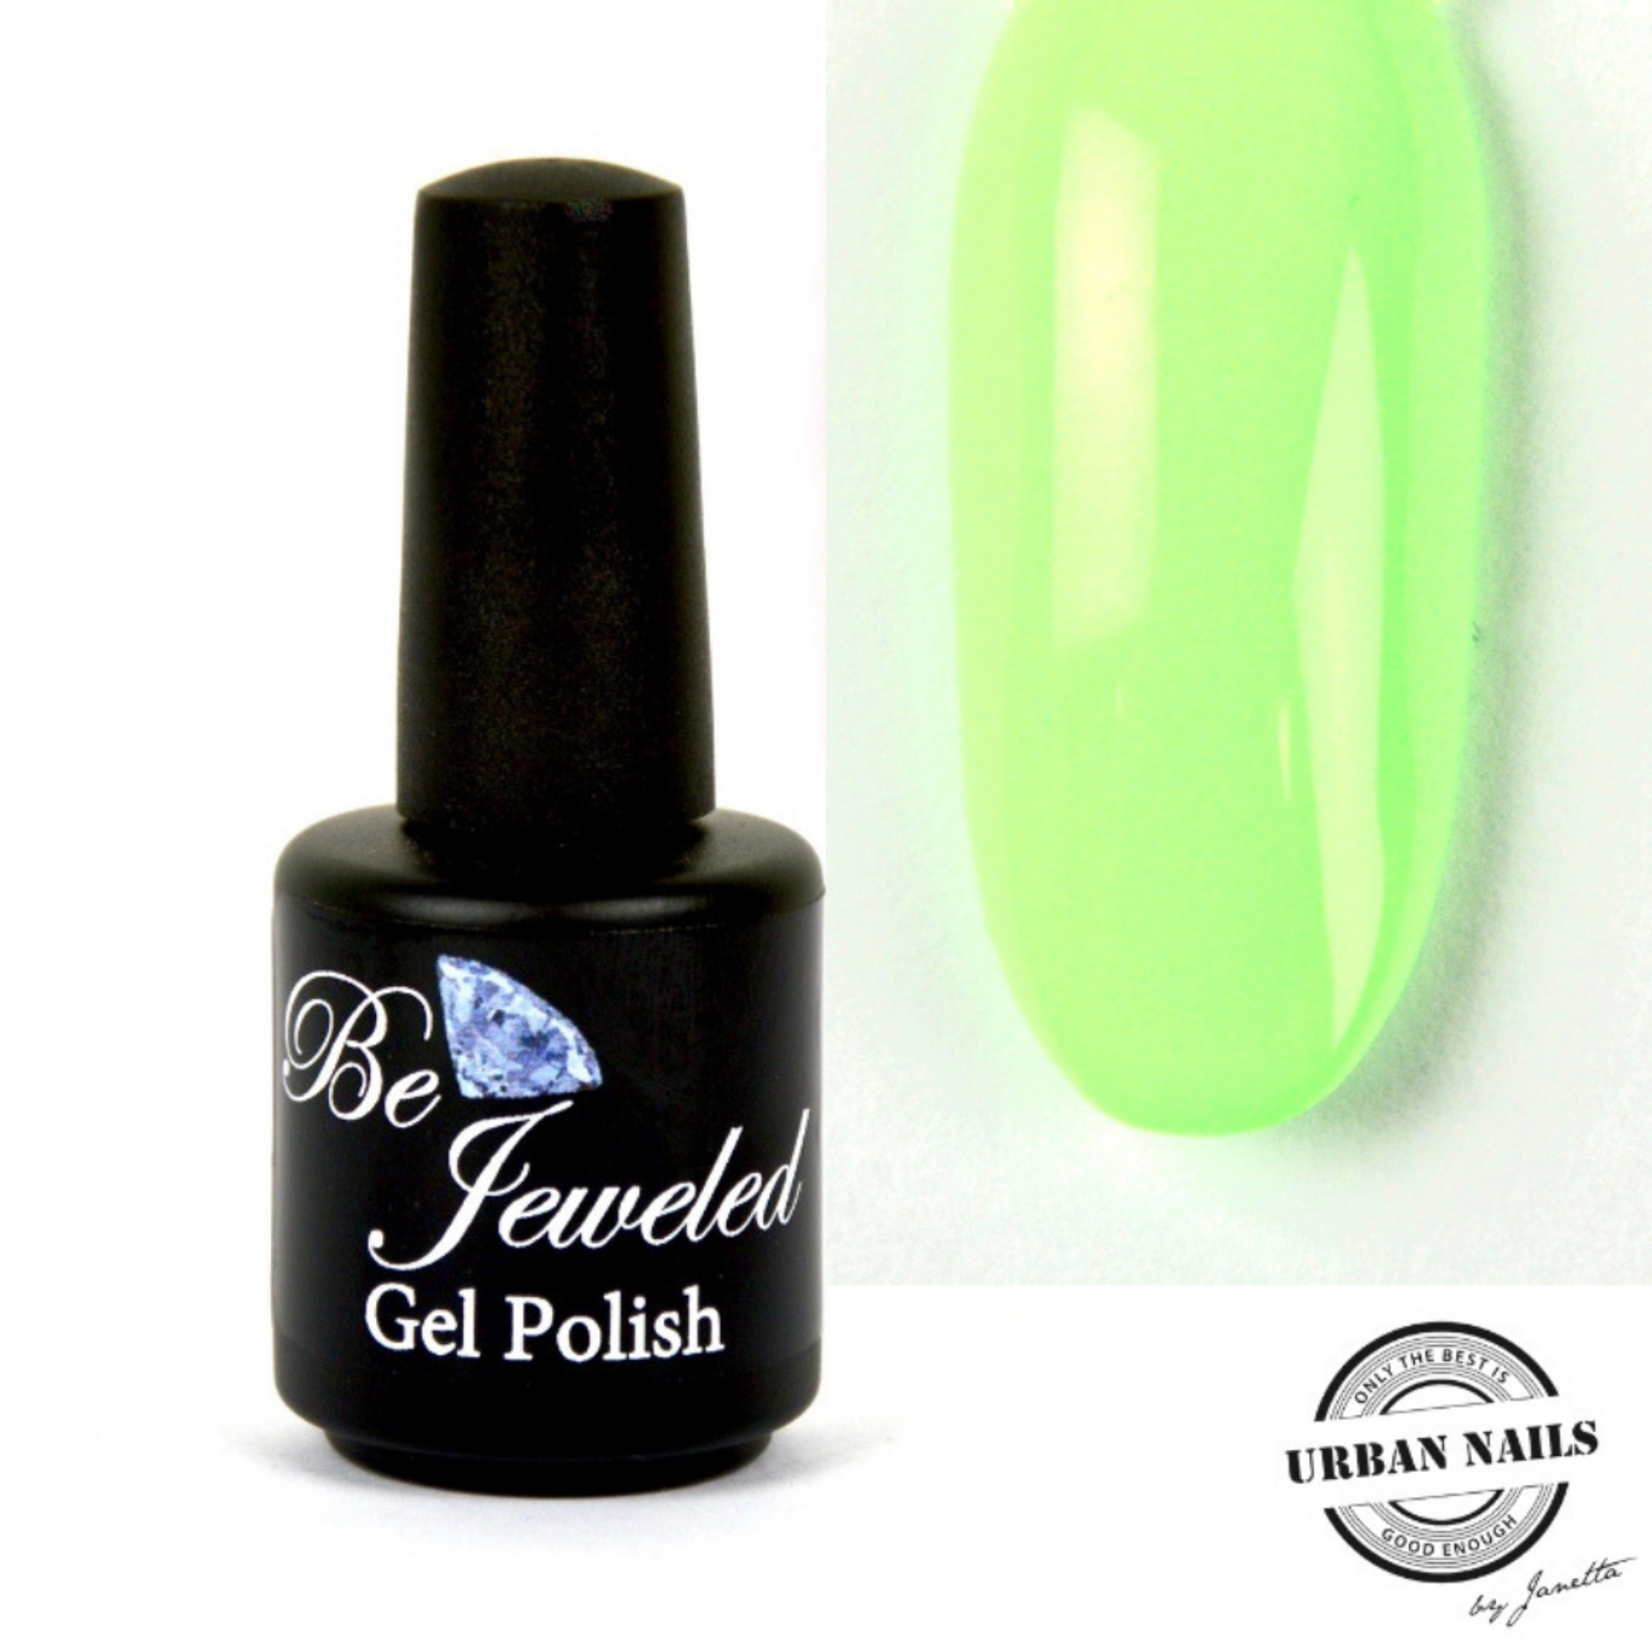 Urban Nails Be Jeweled Gelpolish 92 Pastel Groen